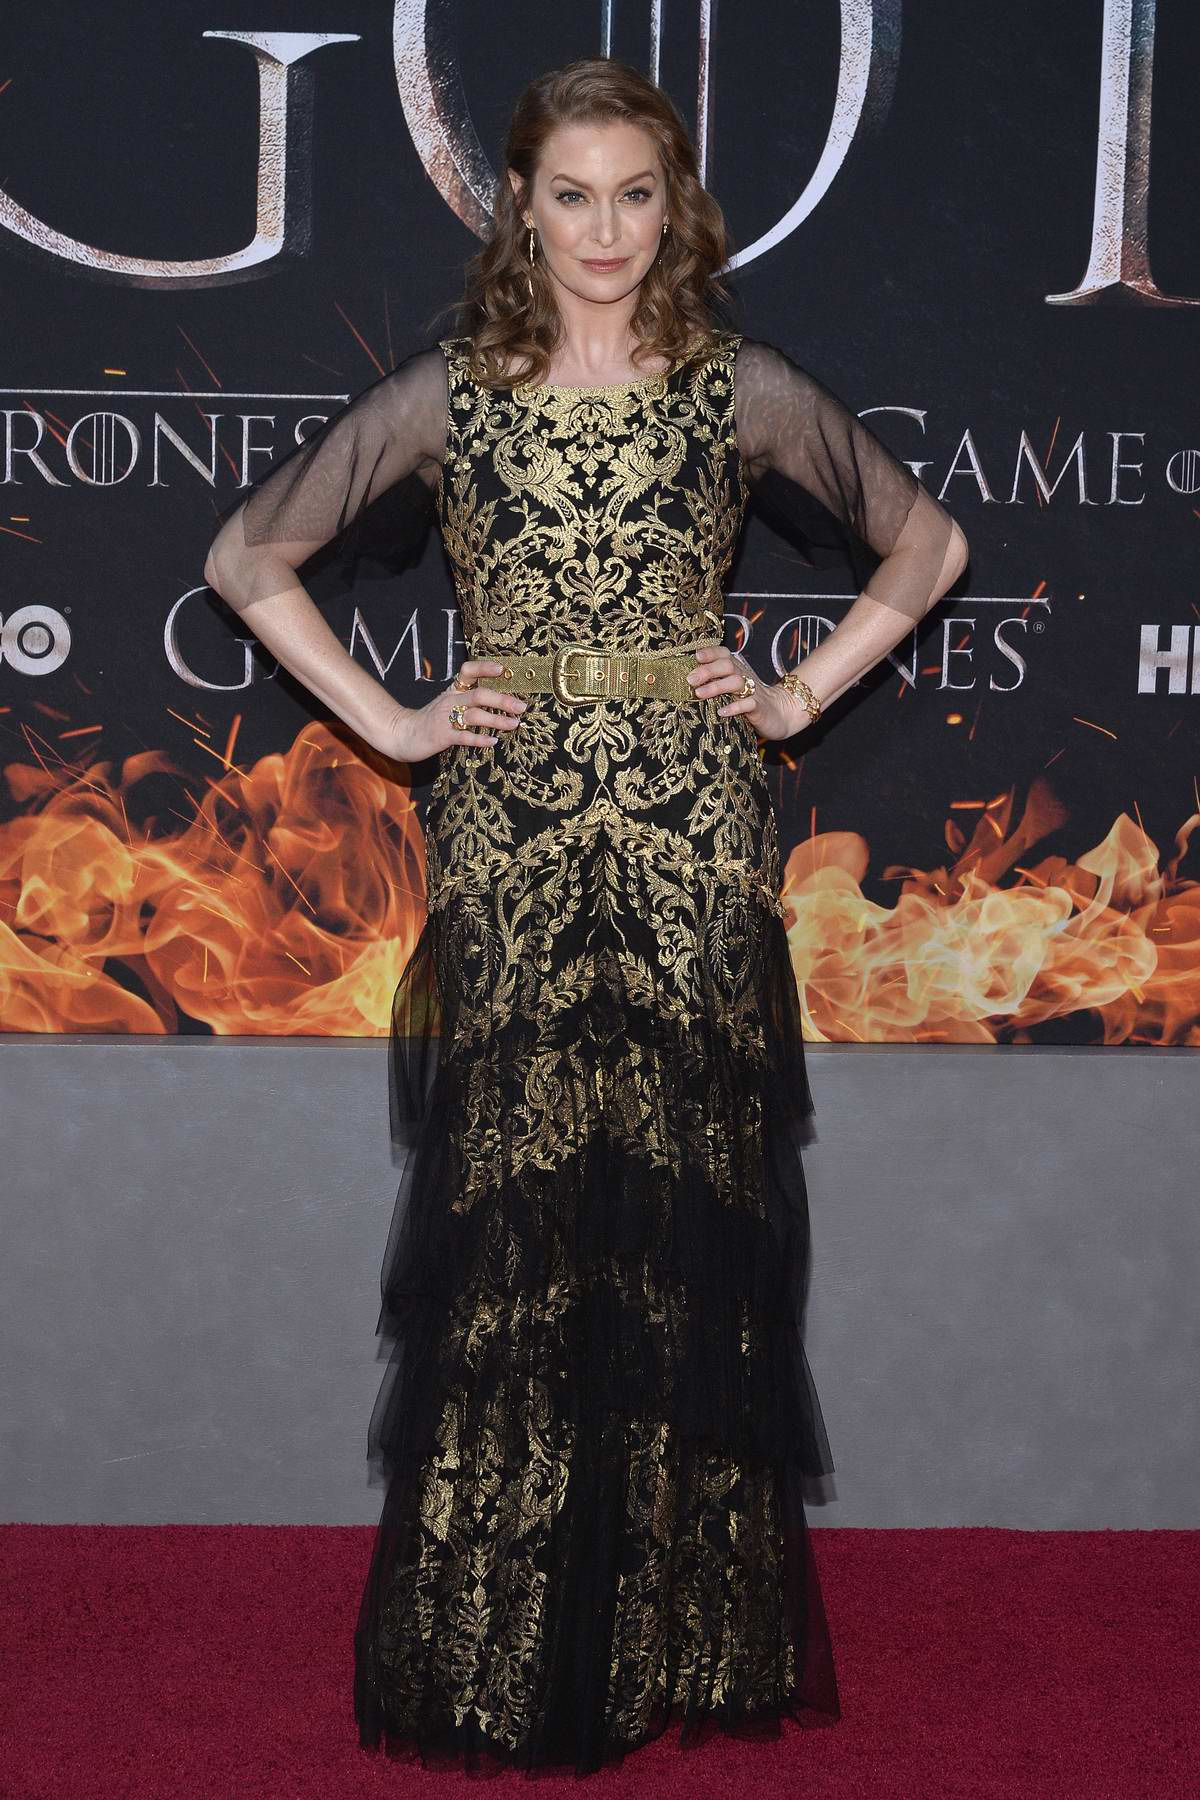 Esme Bianco attends the Season 8 premiere of 'Game of Thrones' at Radio City Music Hall in New York City